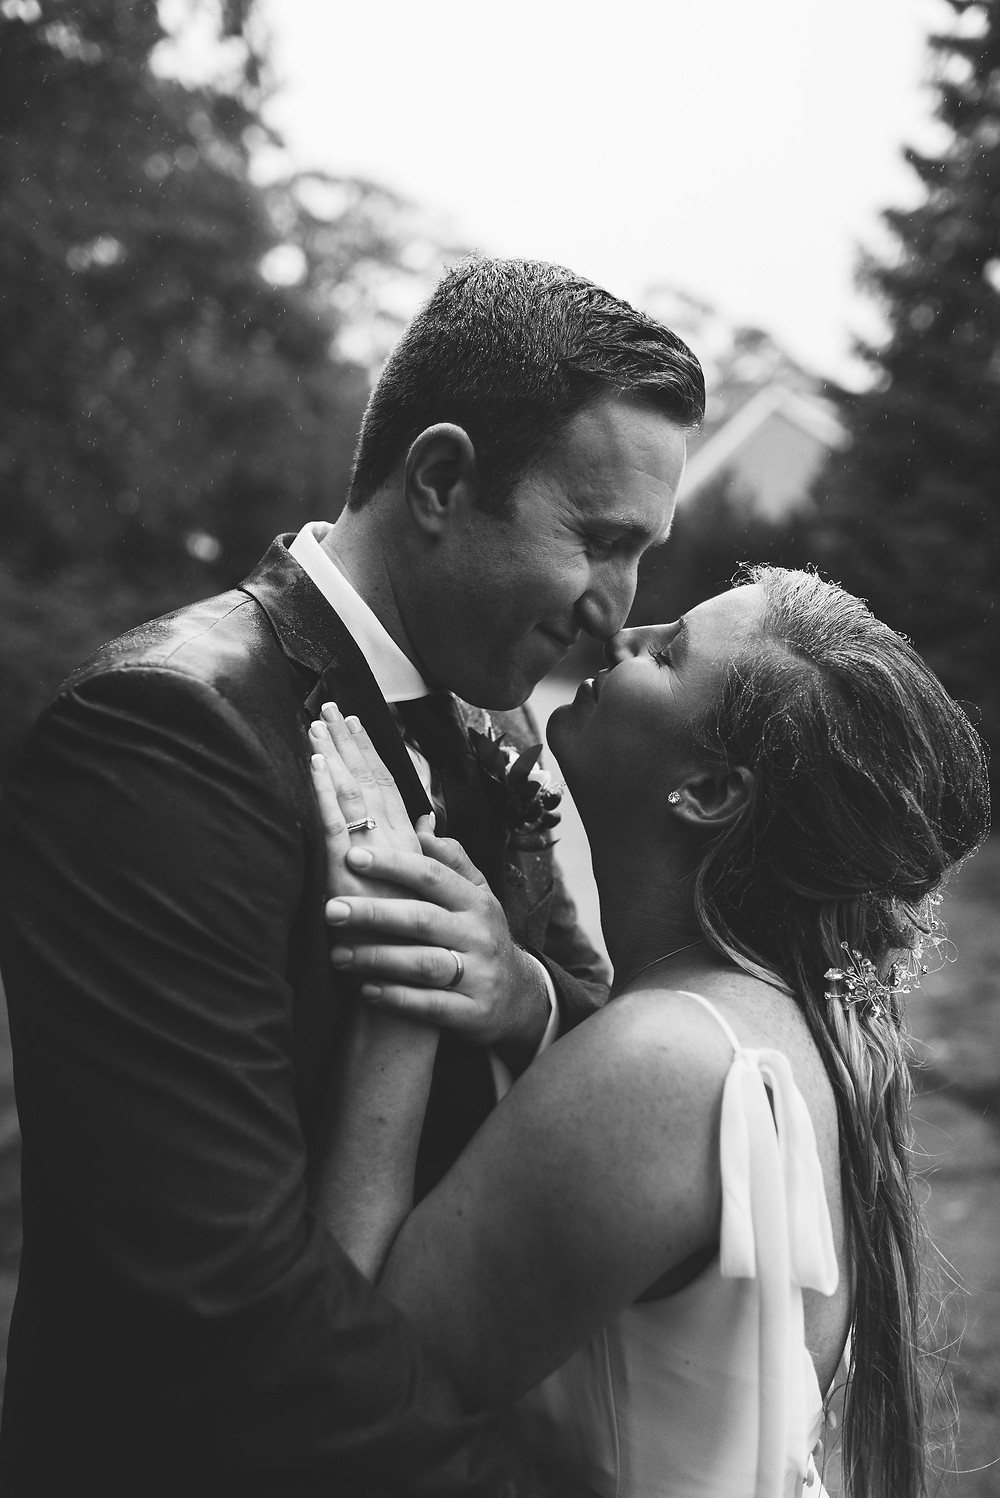 black and white photo of groom and bride almost kissing. you can tell it's raining